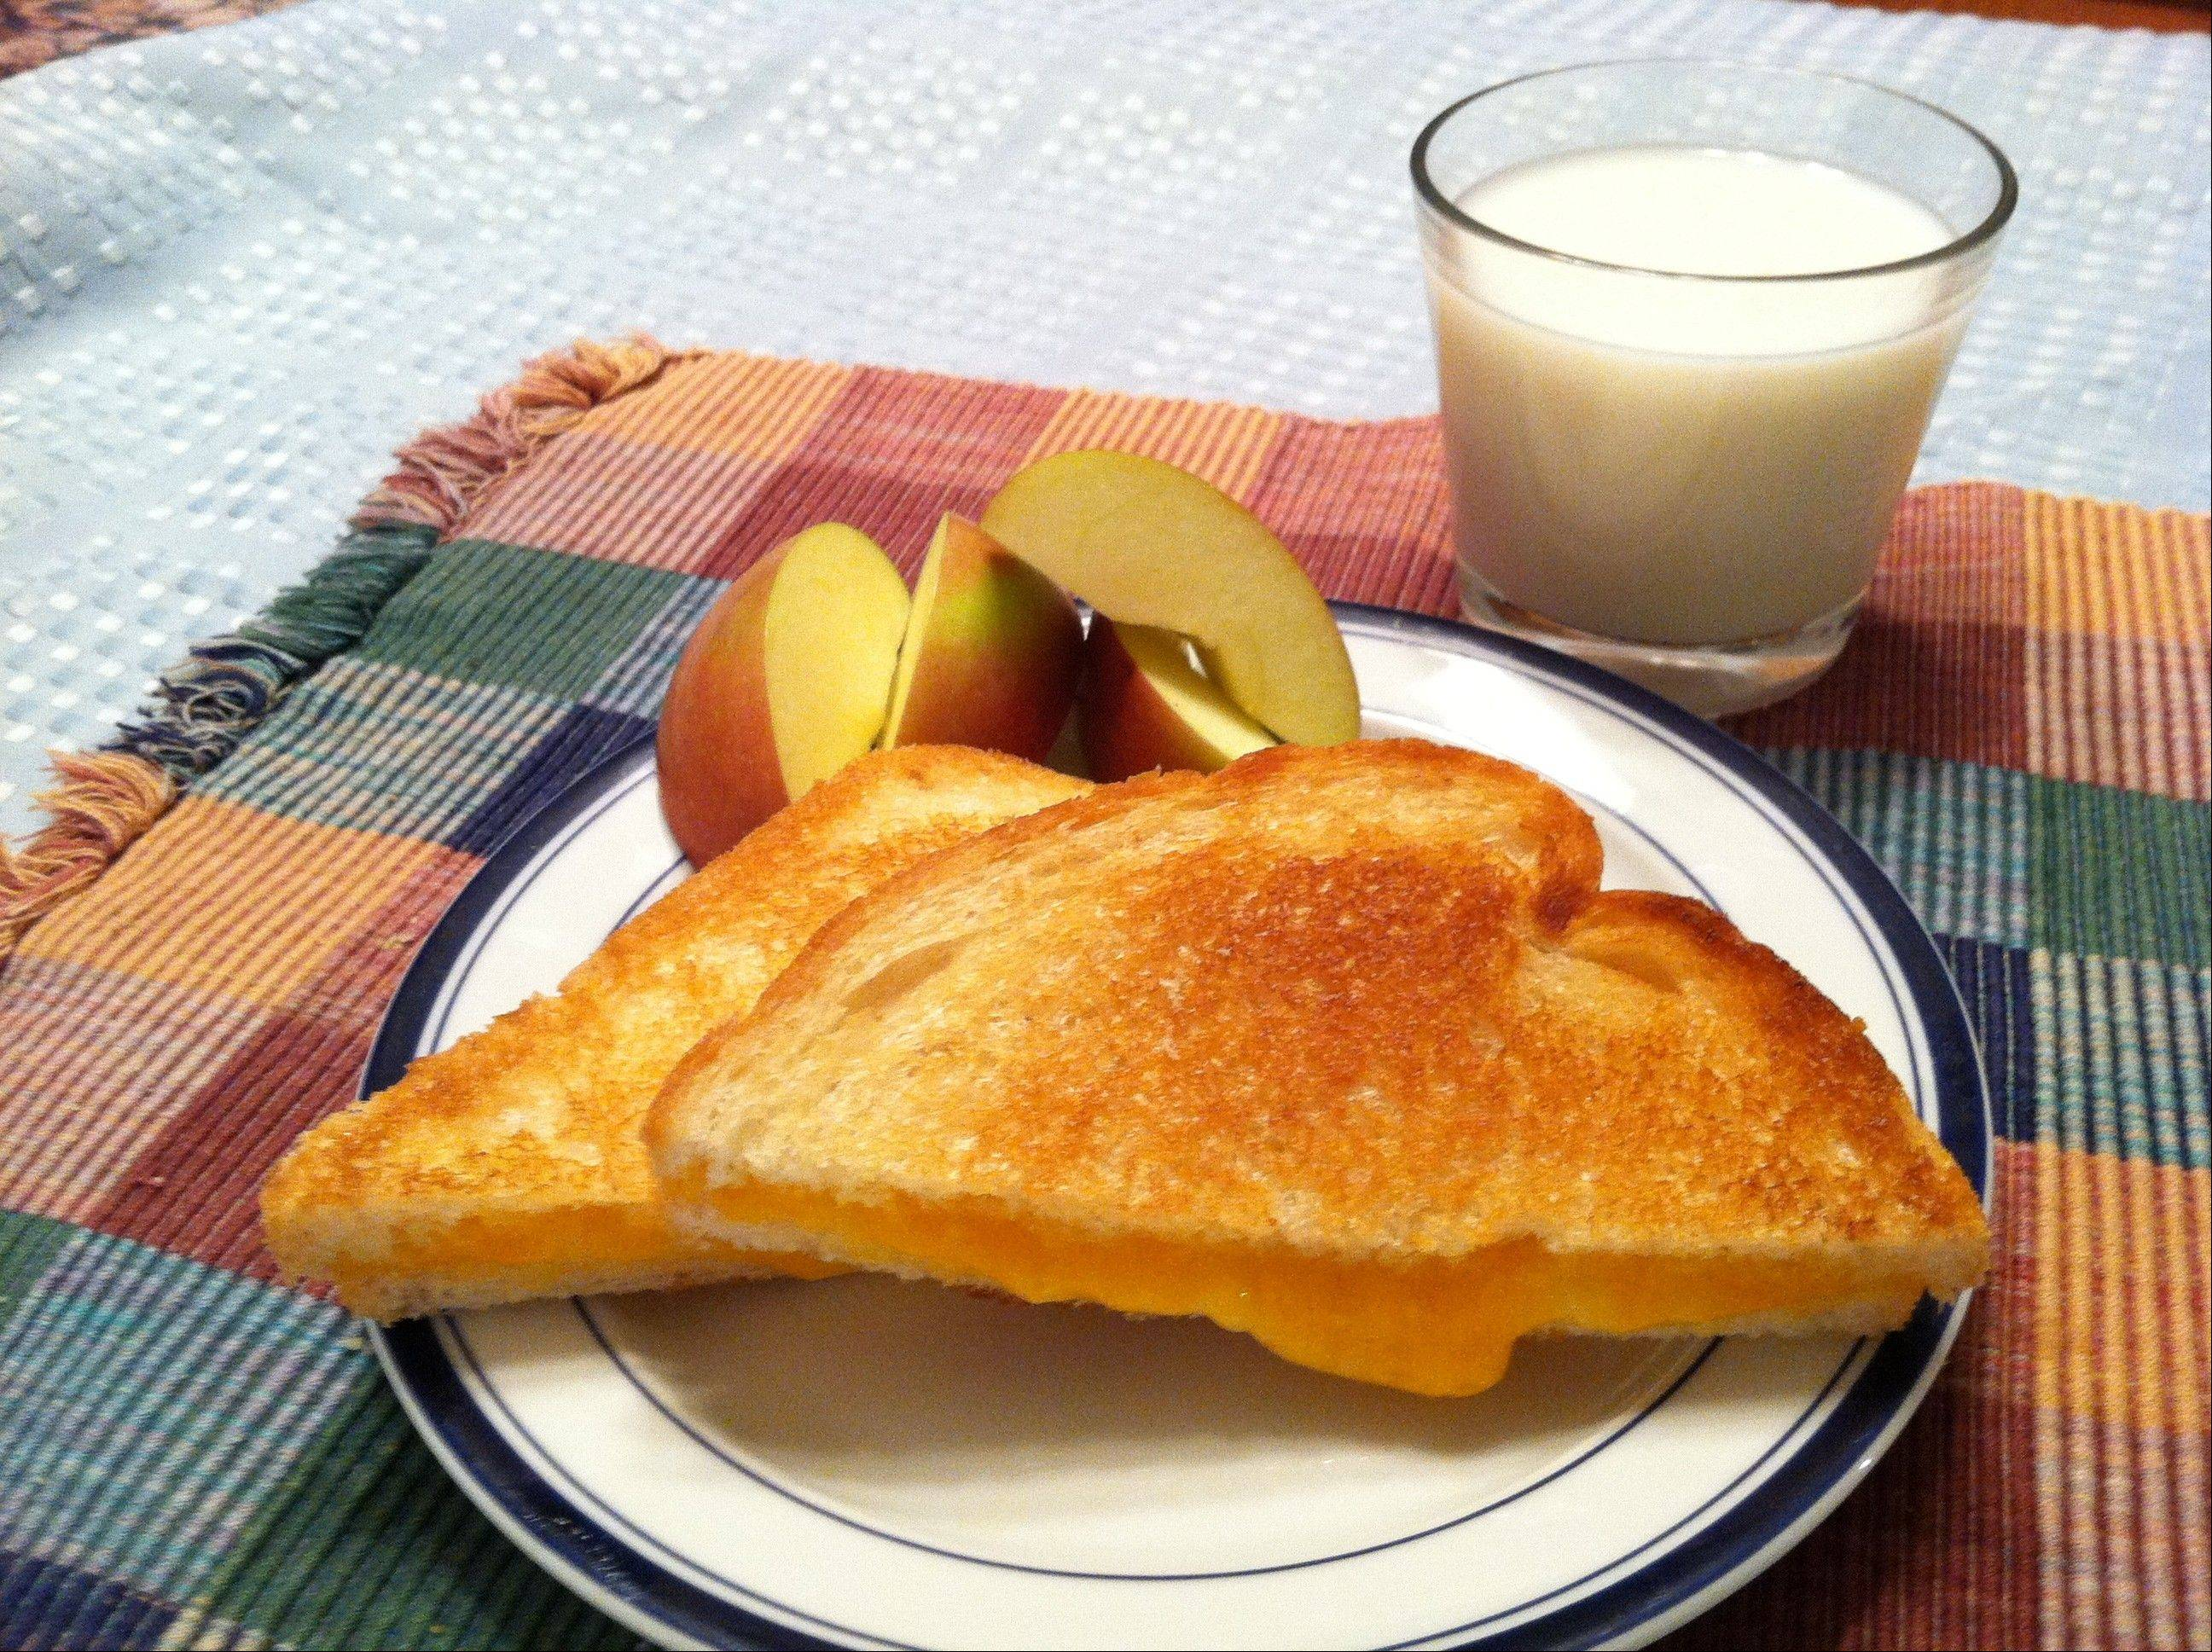 Cheddar is the most popular cheese in America and shines on a grilled cheese sandwich.